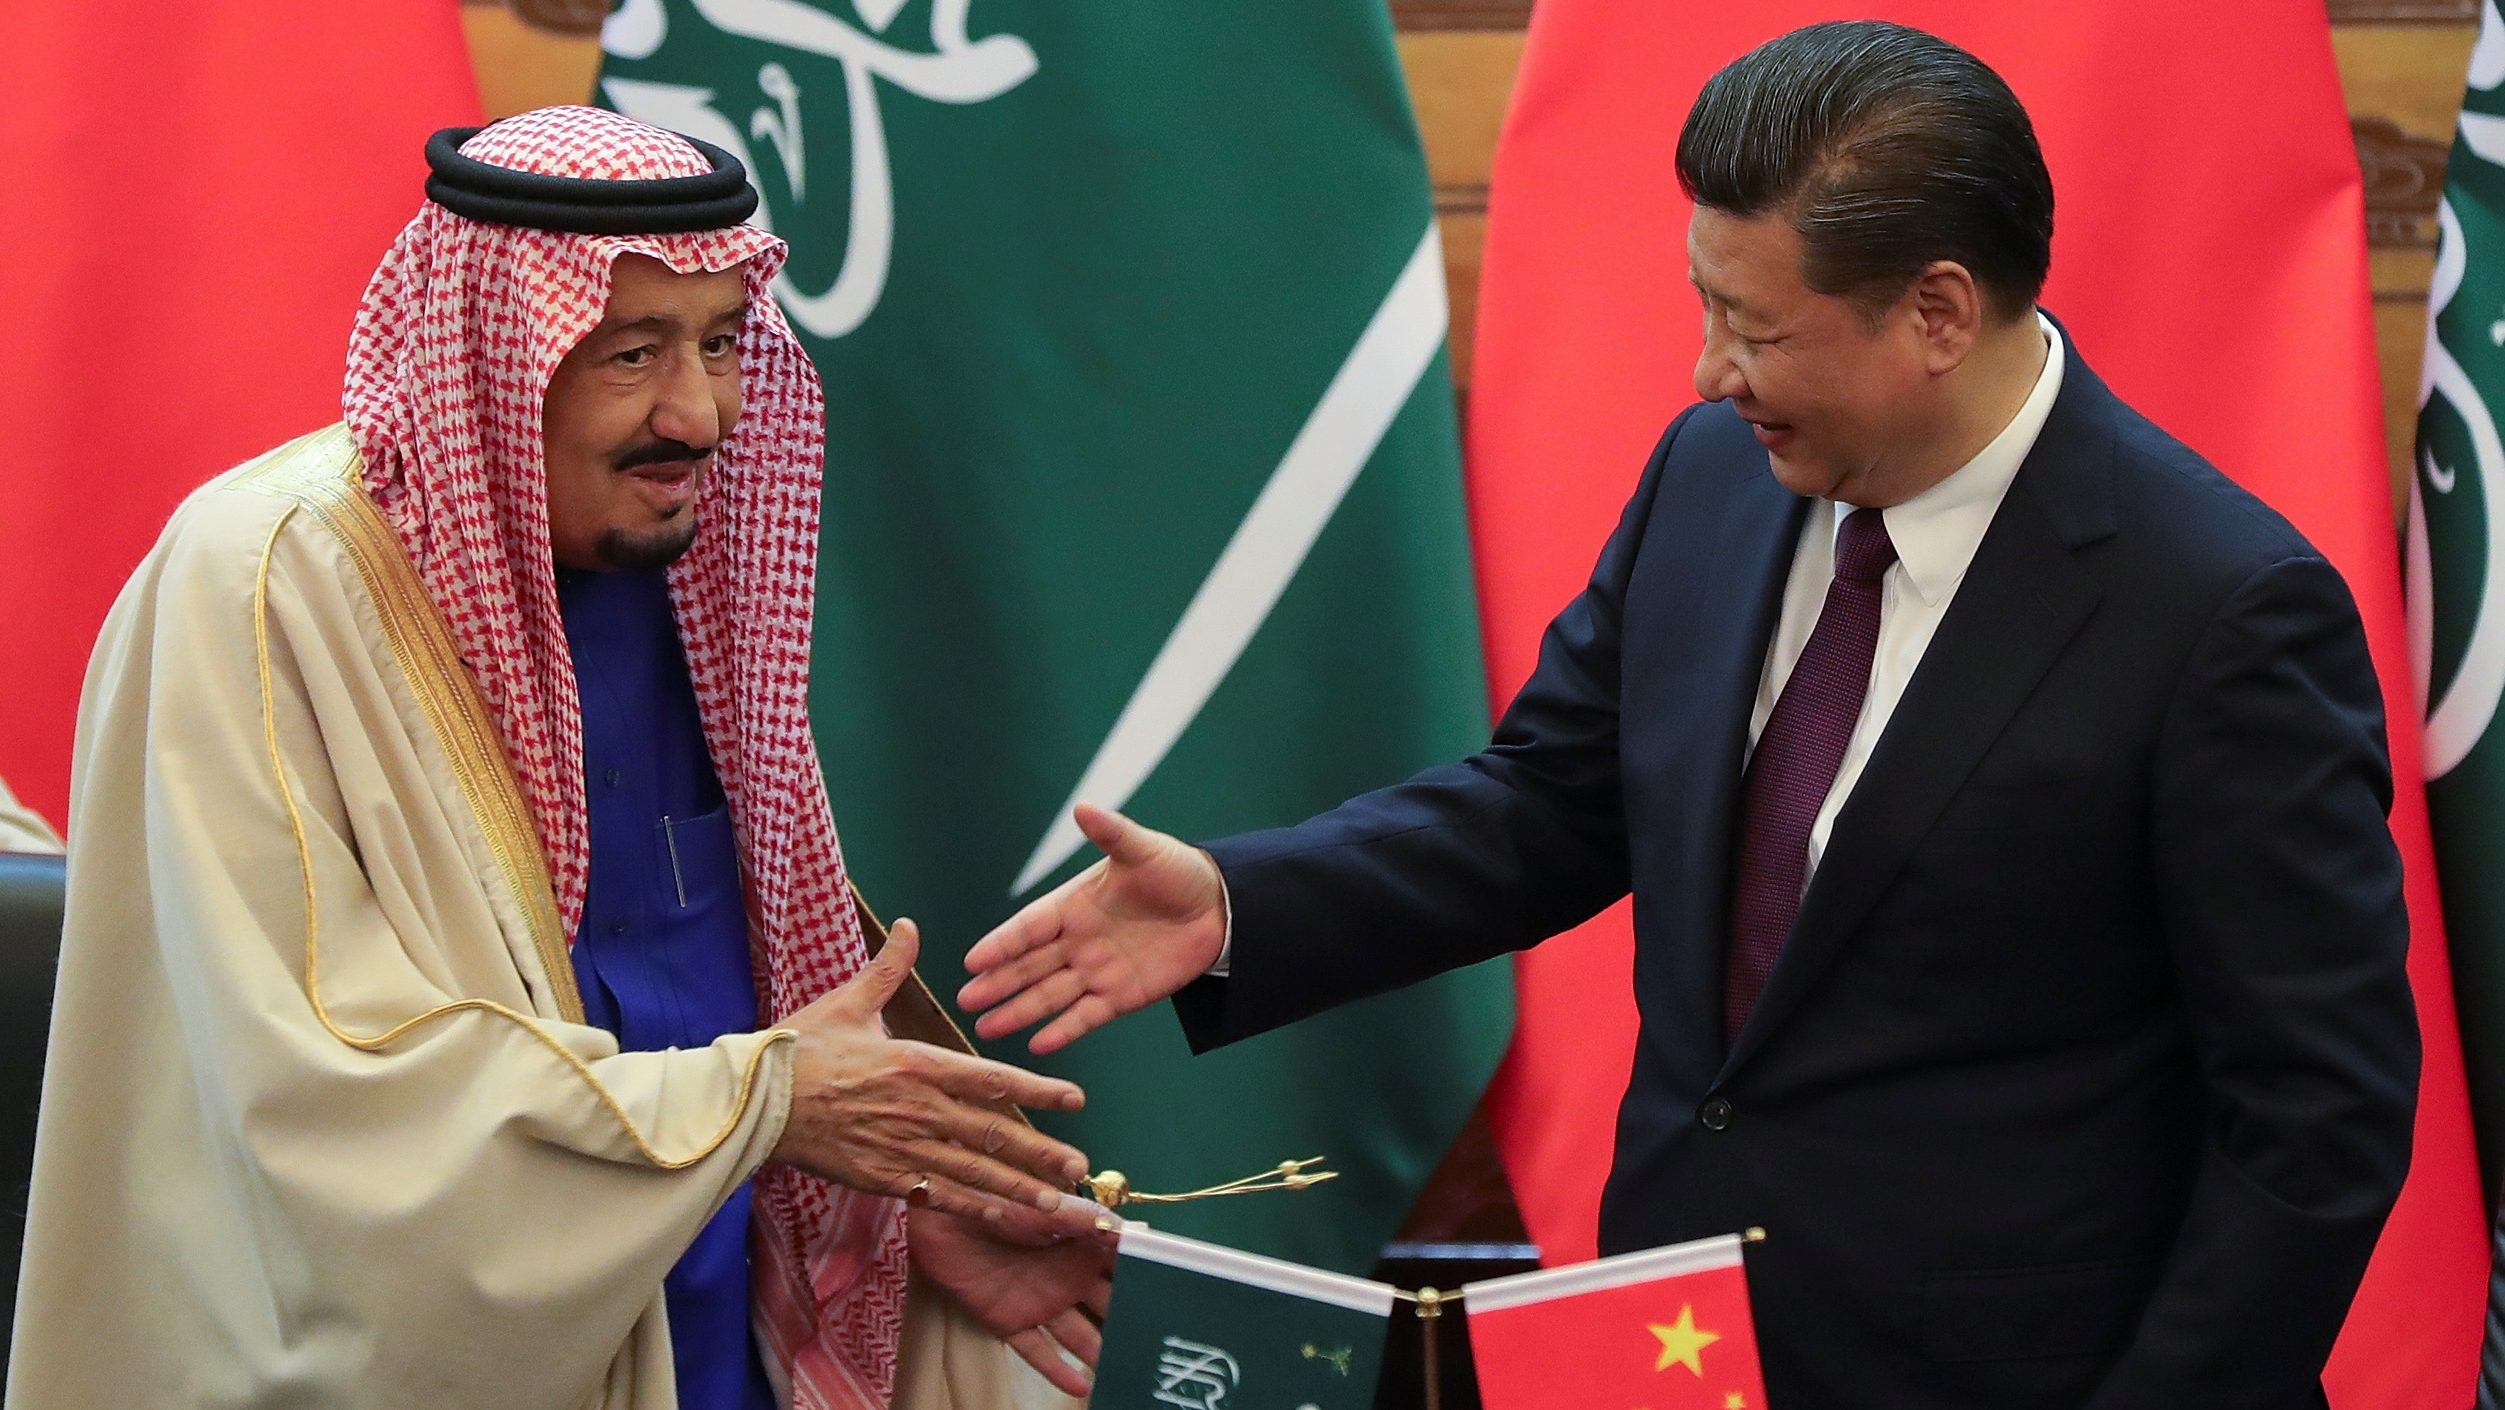 China's President Xi Jinping (R) and Saudi Arabia's King Salman bin Abdulaziz Al-Saud shake hands during a signing ceremony at the Great Hall of the People in Beijing, China March 16, 2017.